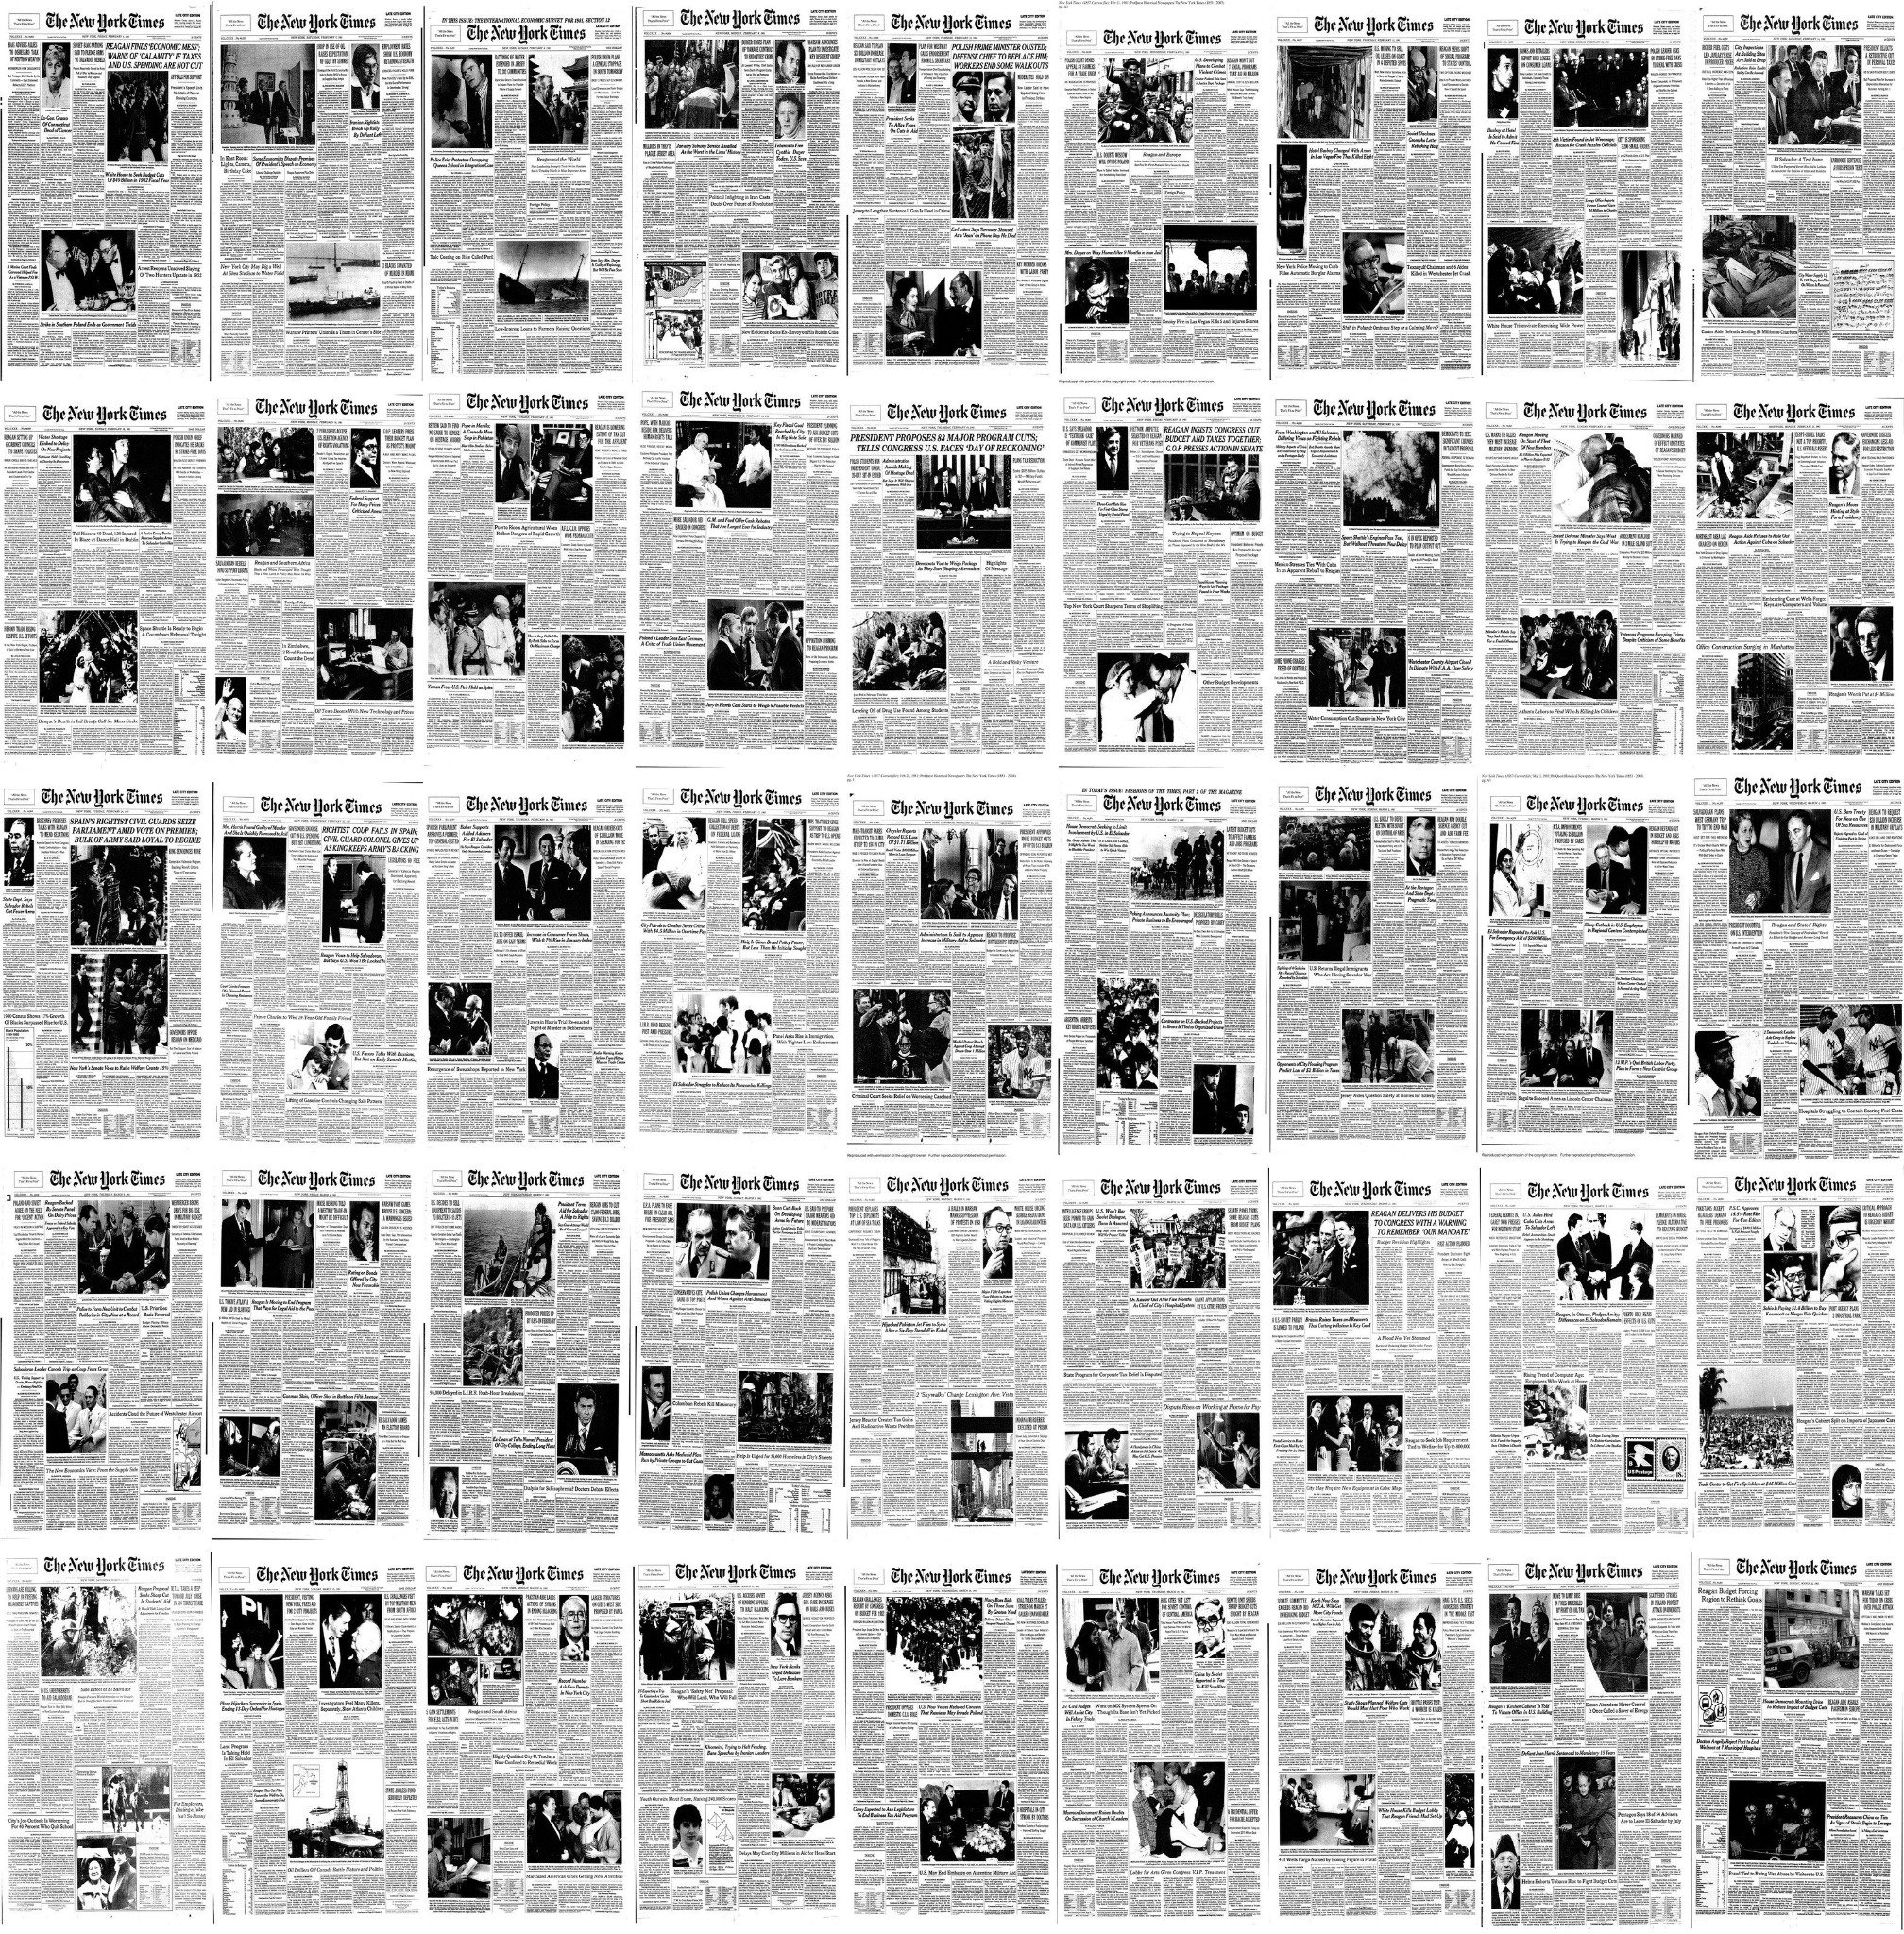 Every NYT front page since 1852 https://t.co/ODtqJe18u8